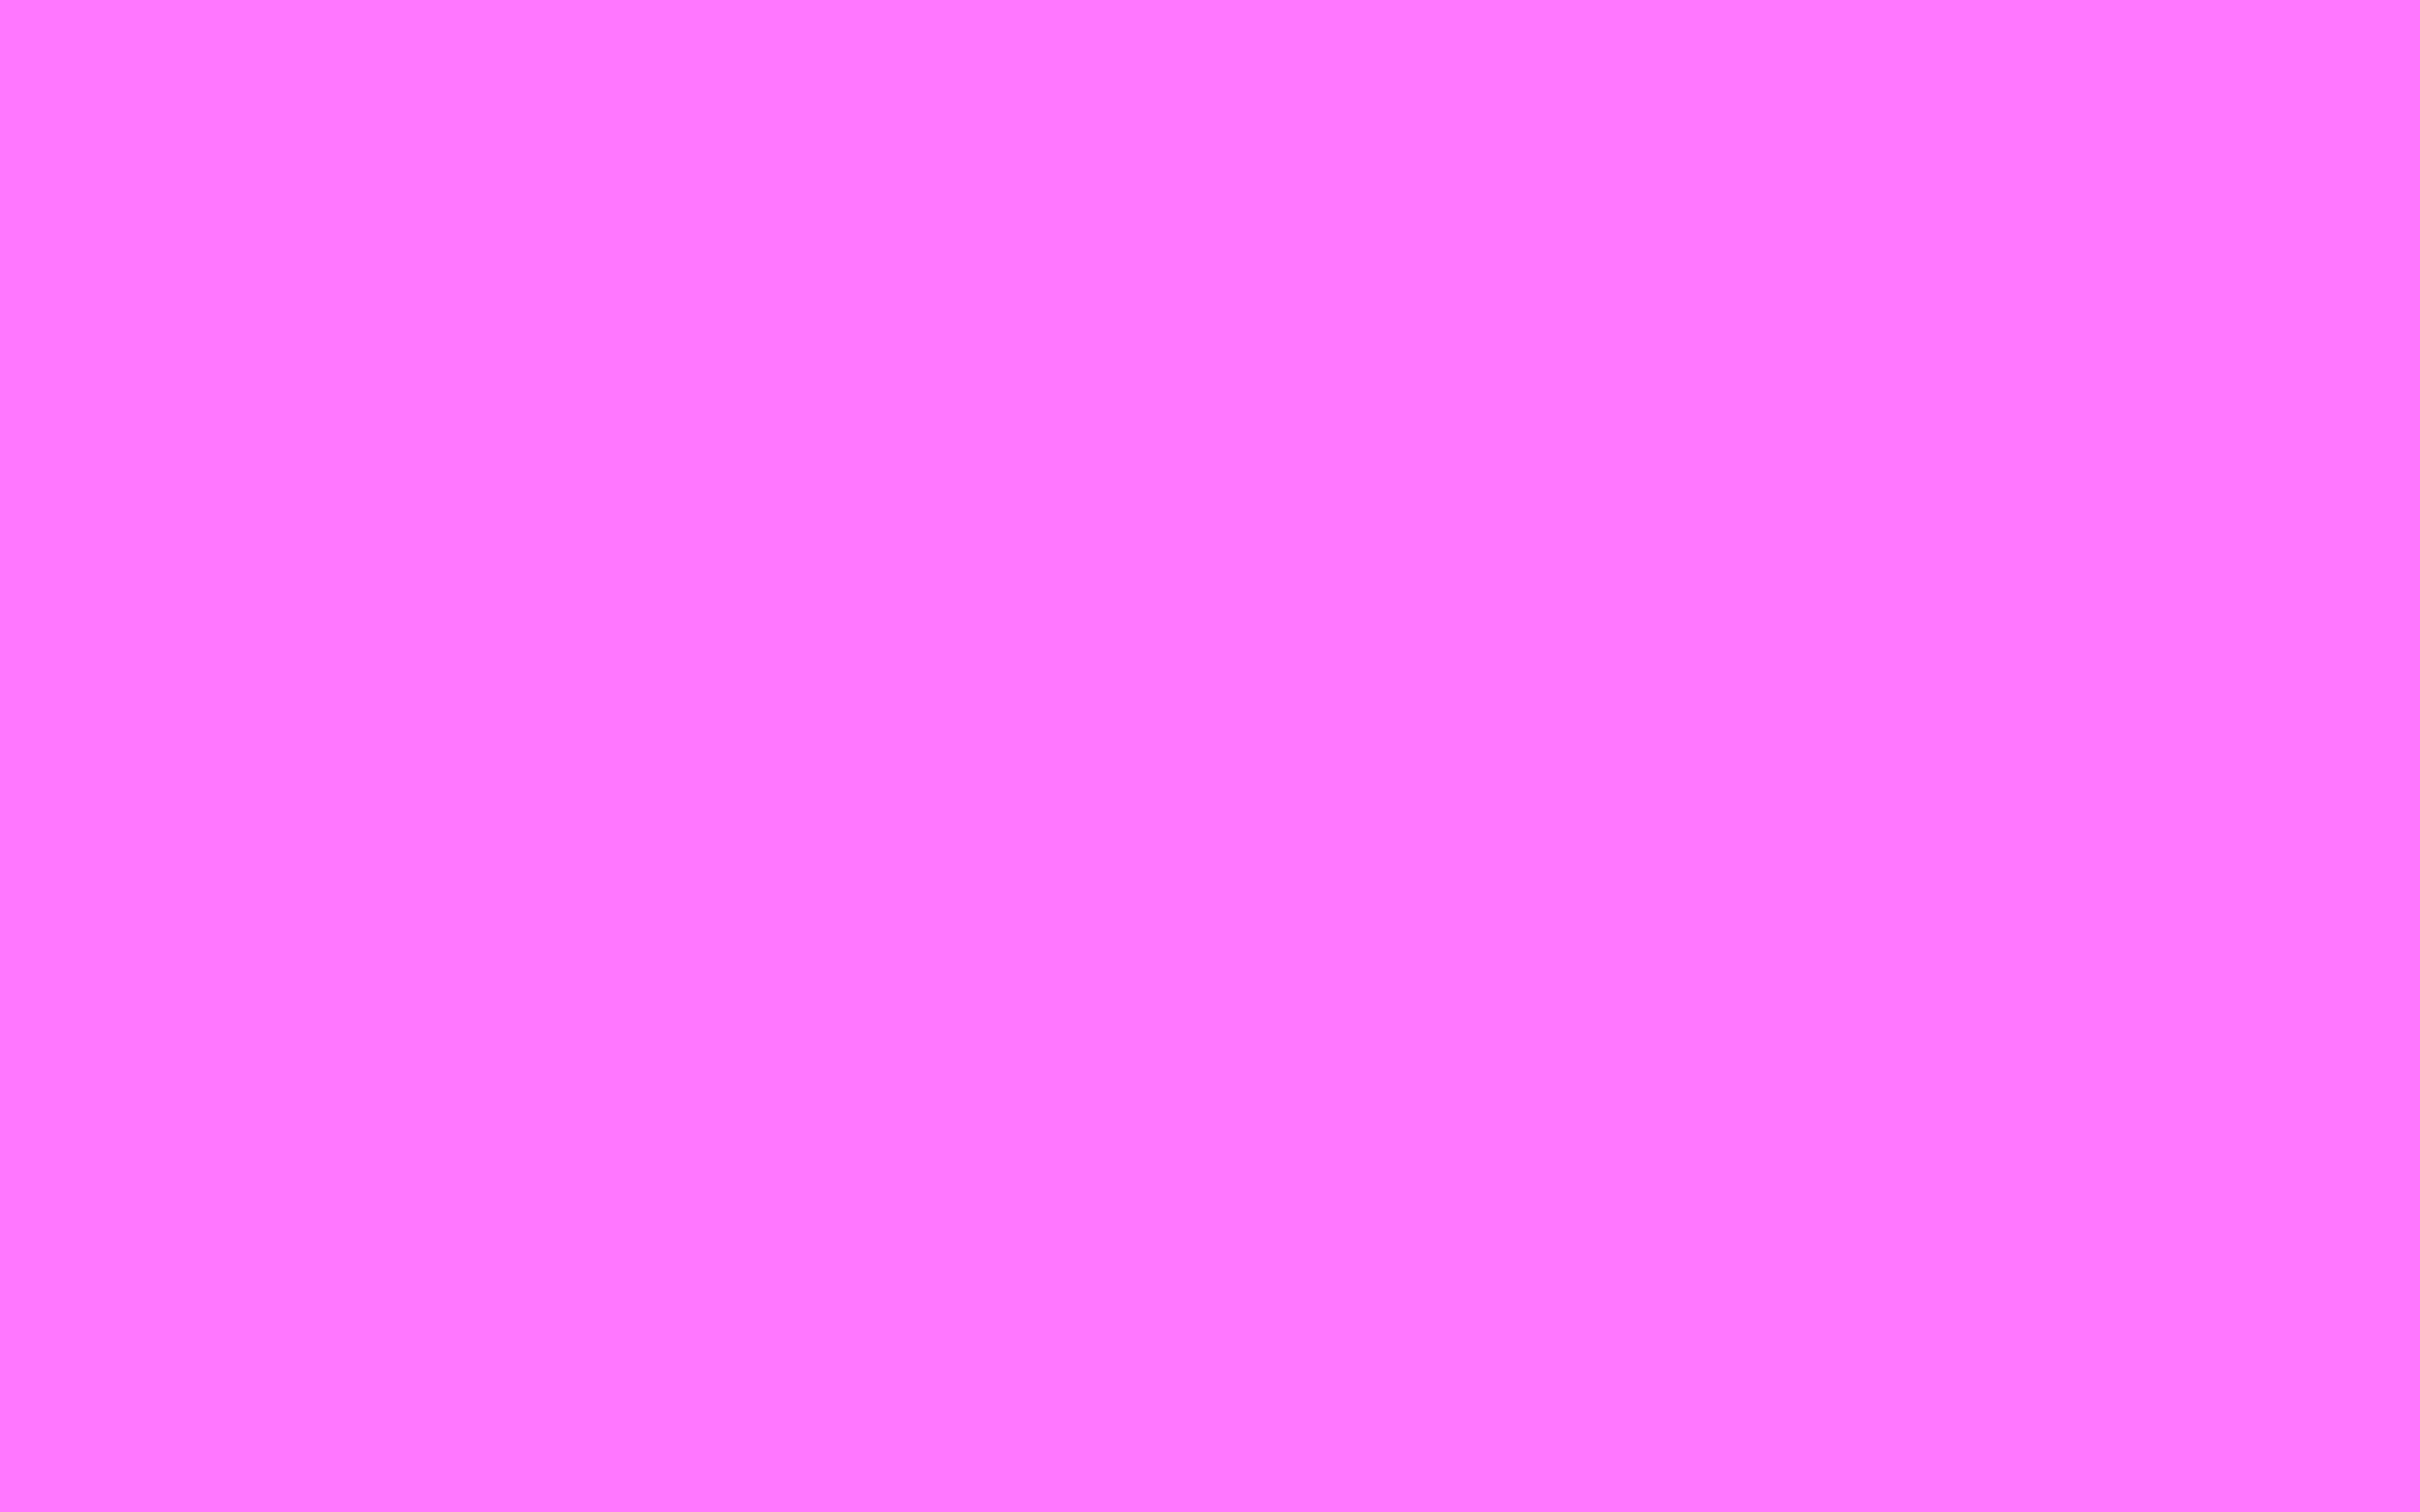 2560x1600 Fuchsia Pink Solid Color Background